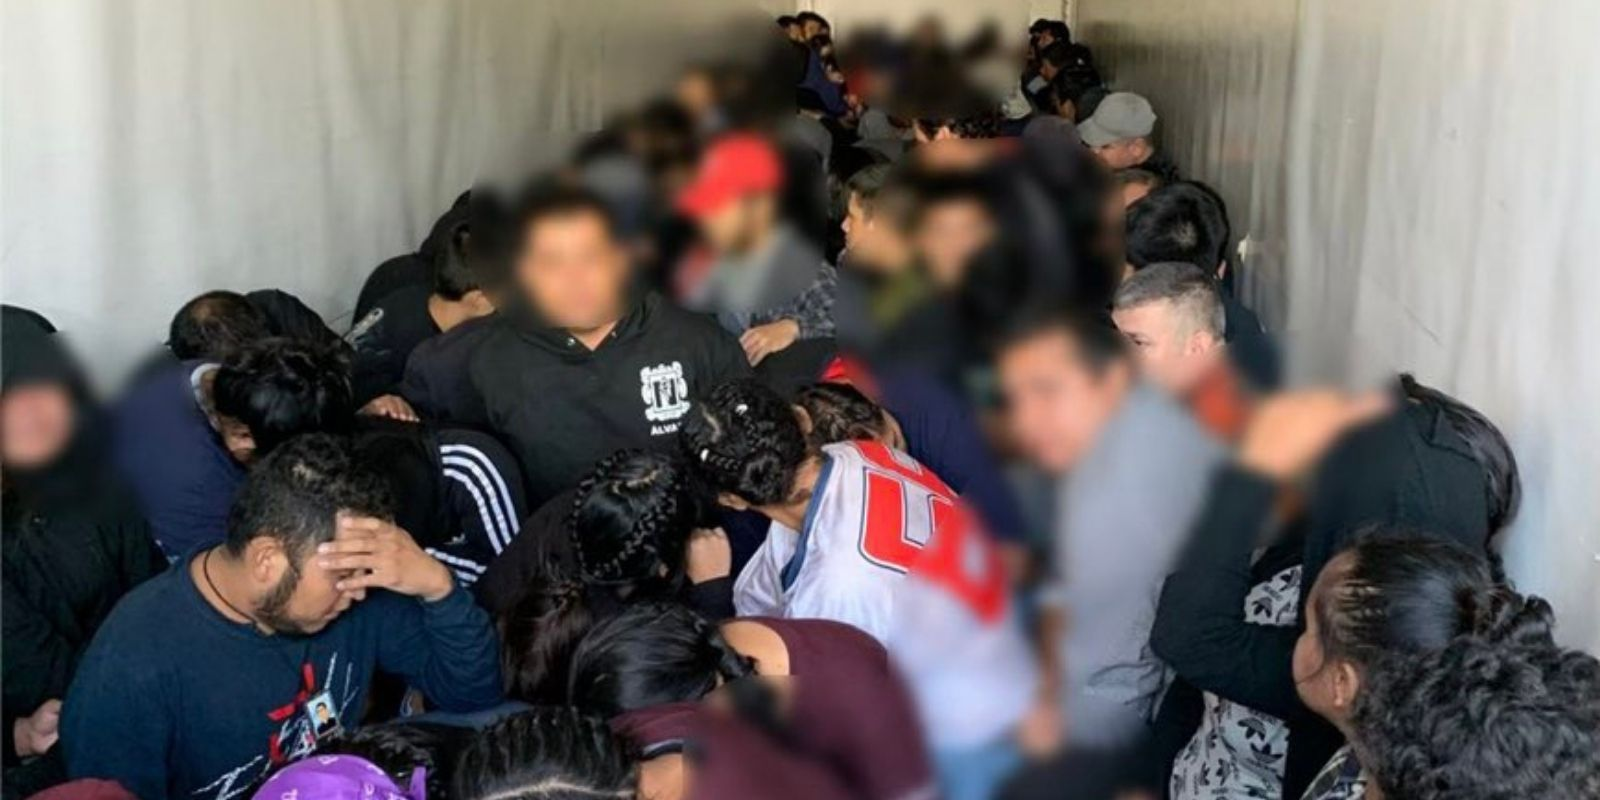 Texas state troopers discover over 105 illegal immigrants packed inside semi-truck